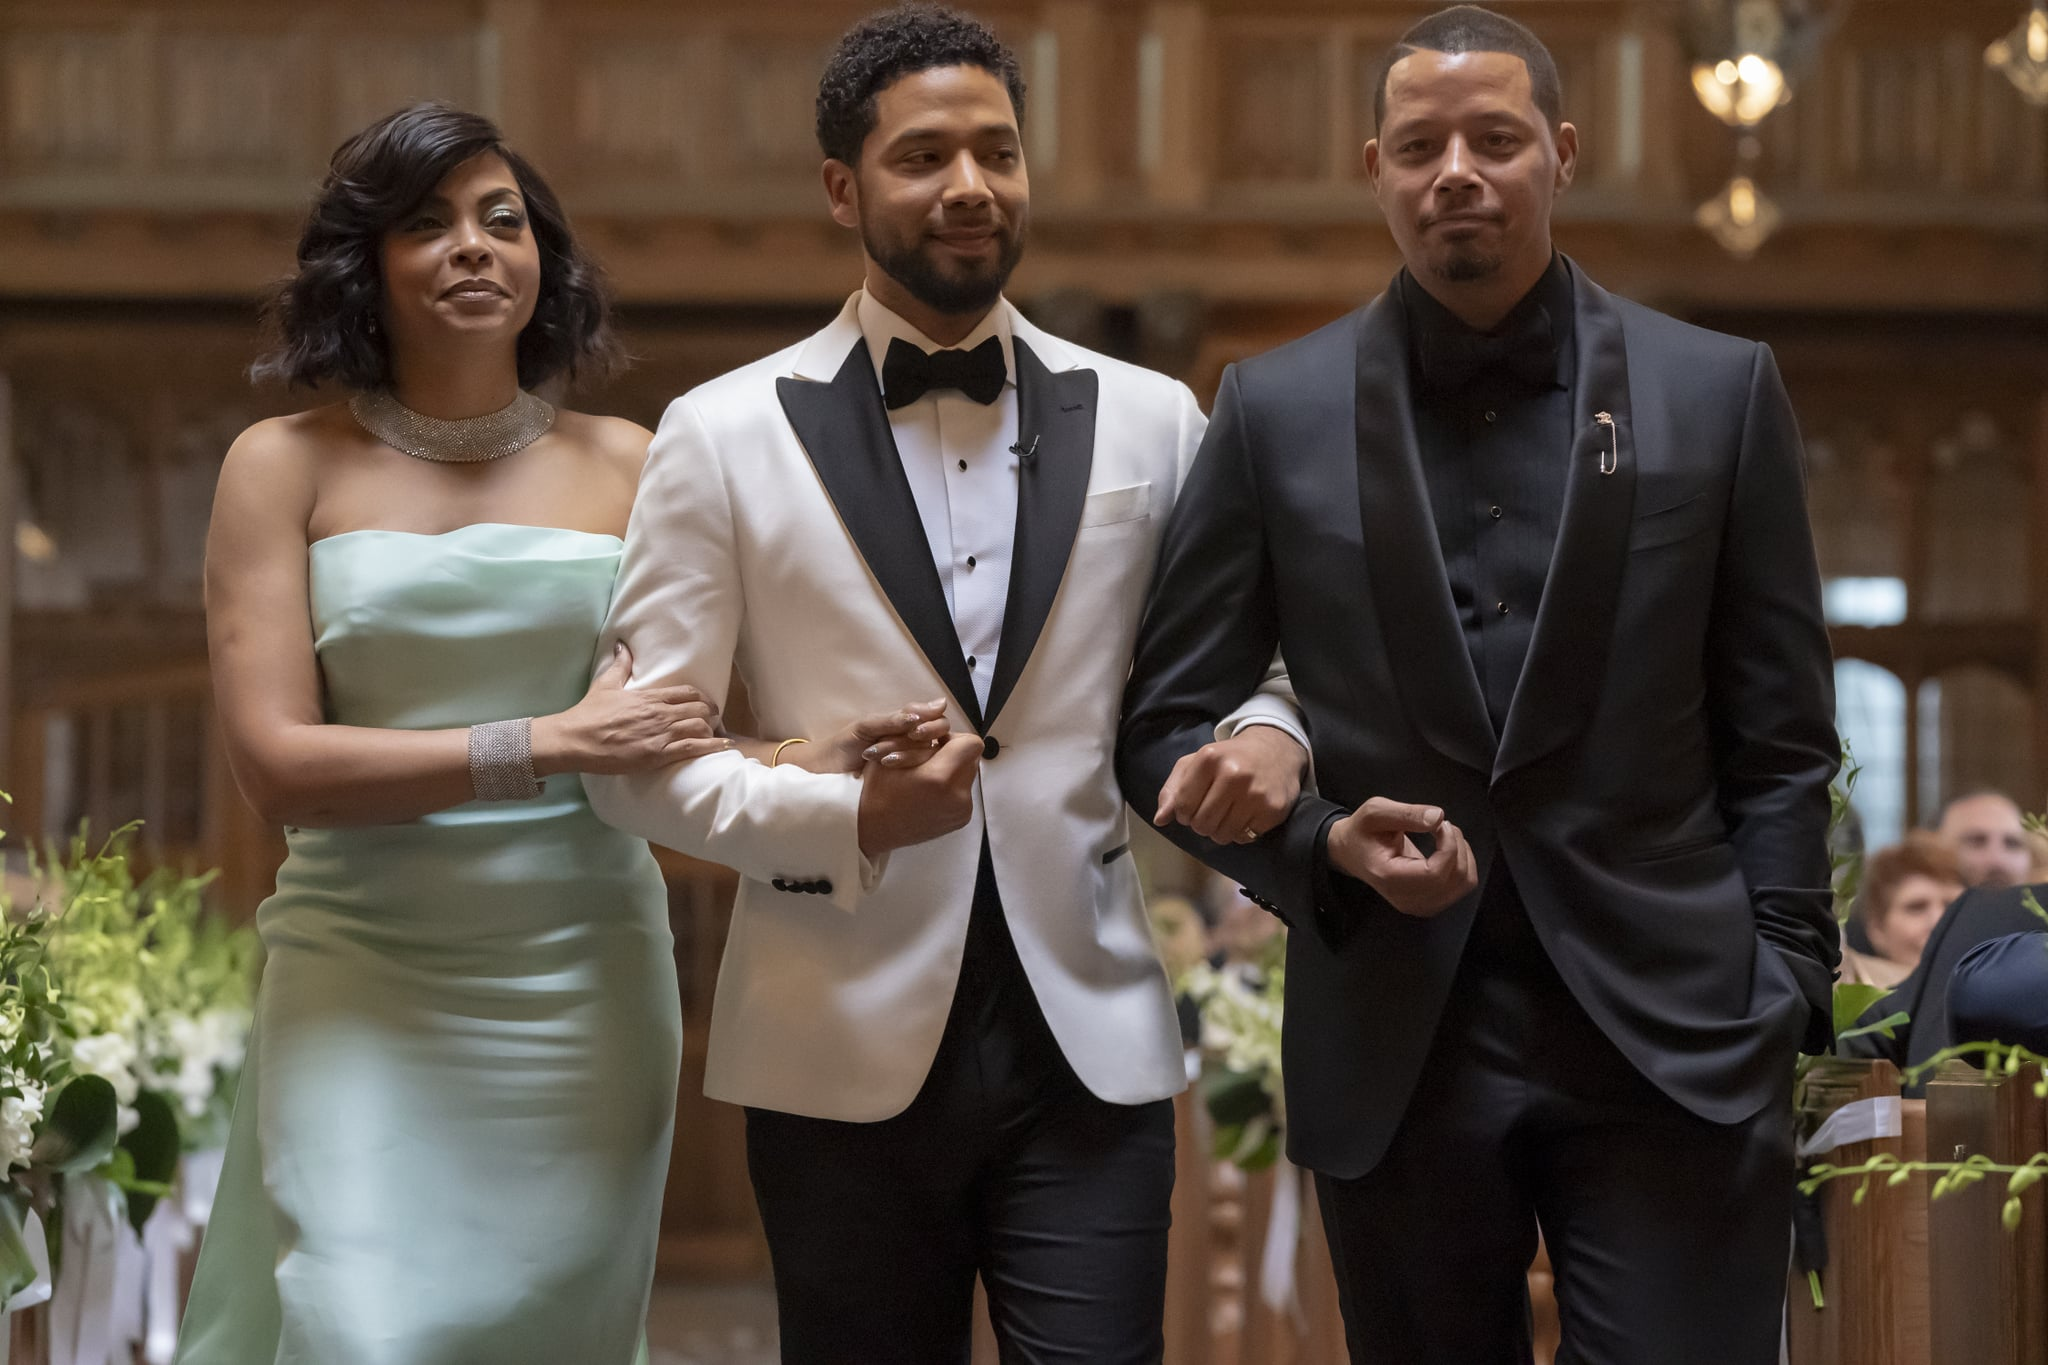 EMPIRE: L-R: Taraji P. Henson, Jussie Smollett and Terrence Howard in the